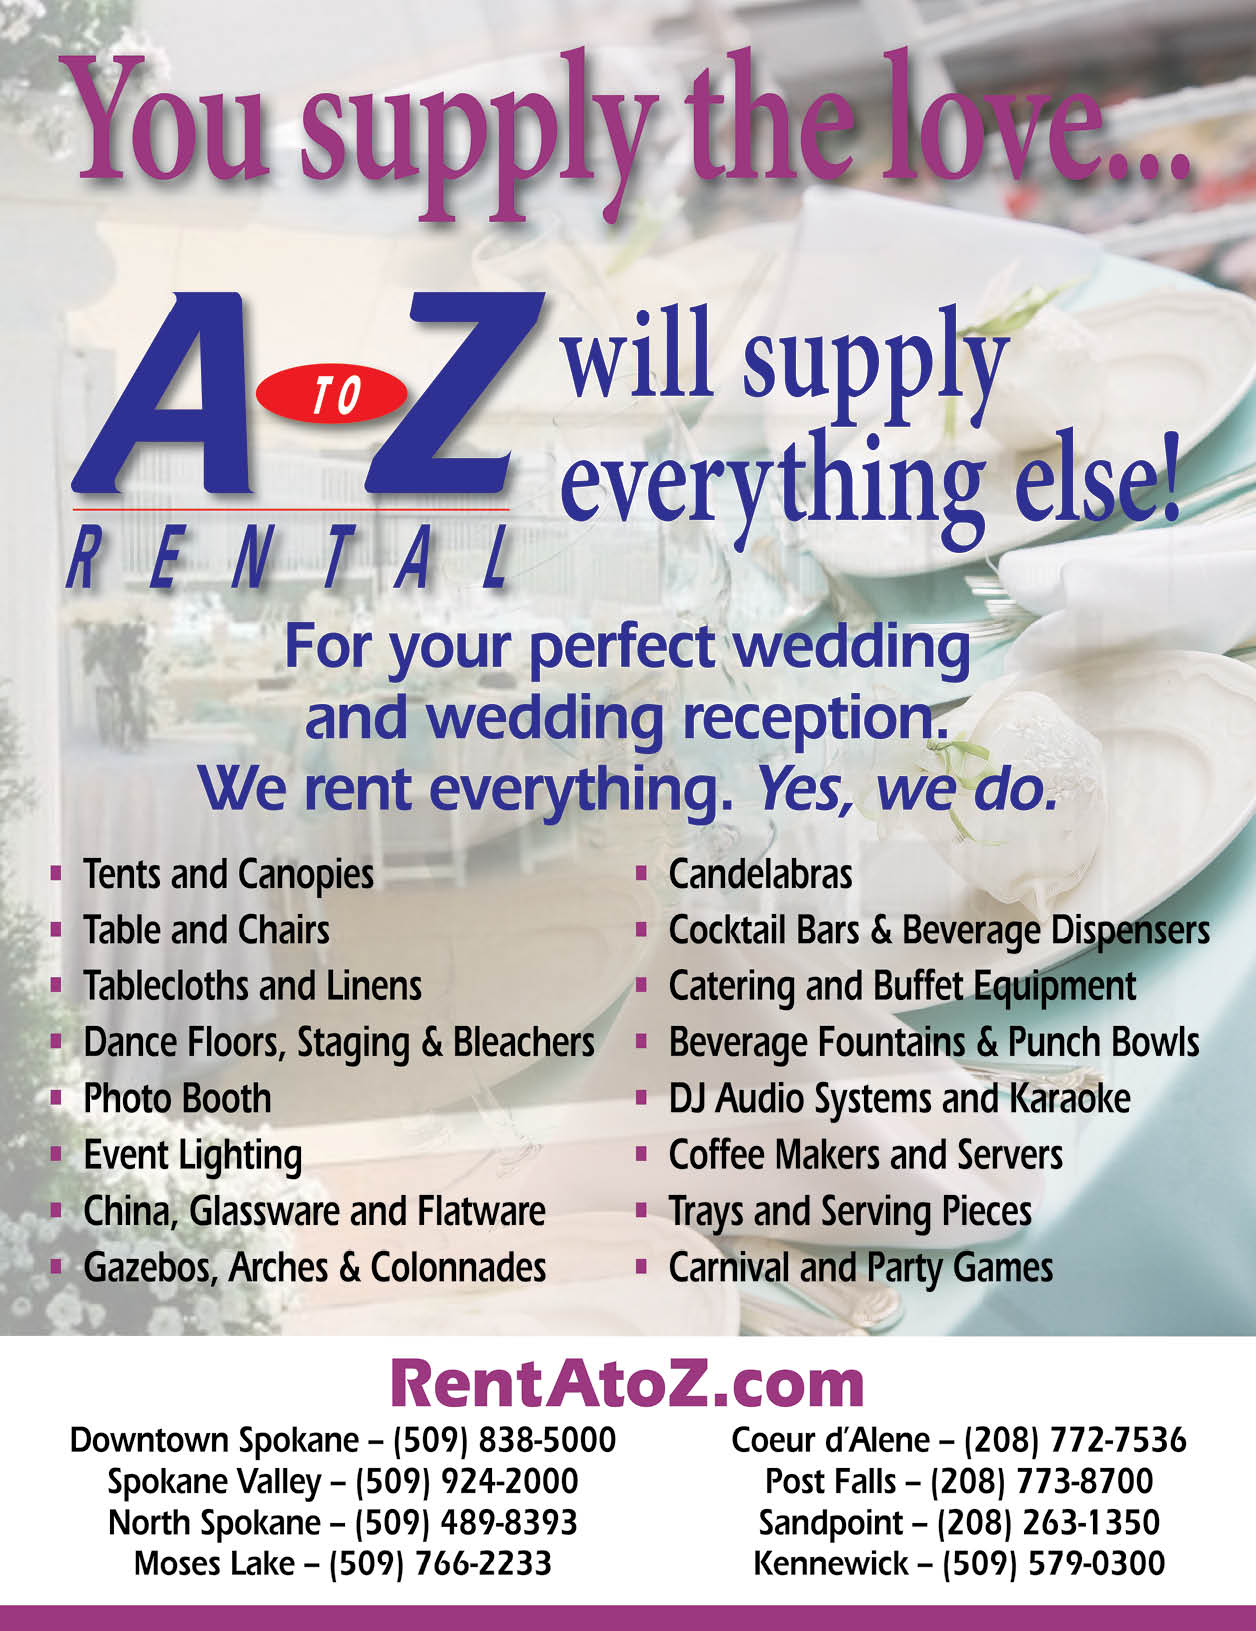 "<a href=""/vendors/rental-decor?id=""/>http://theweddingresourceguide.net/index.php?option=com_content&amp;view=article&amp;id=284"